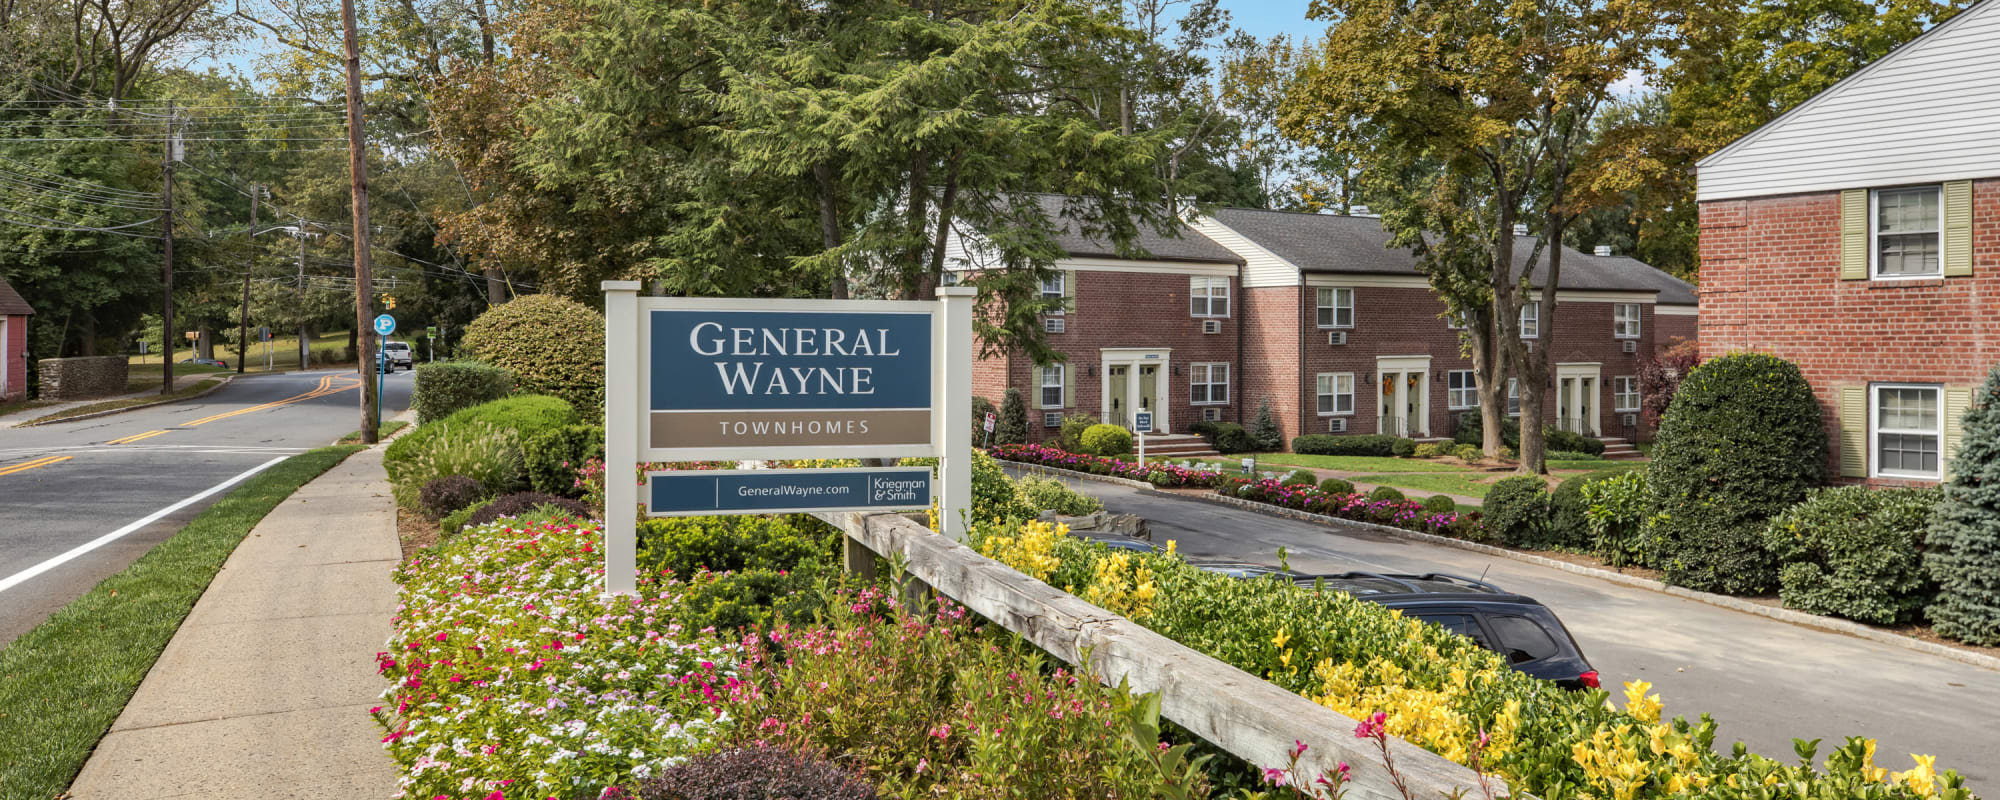 Photos of General Wayne Townhomes and Ridgedale Gardens in Madison, New Jersey